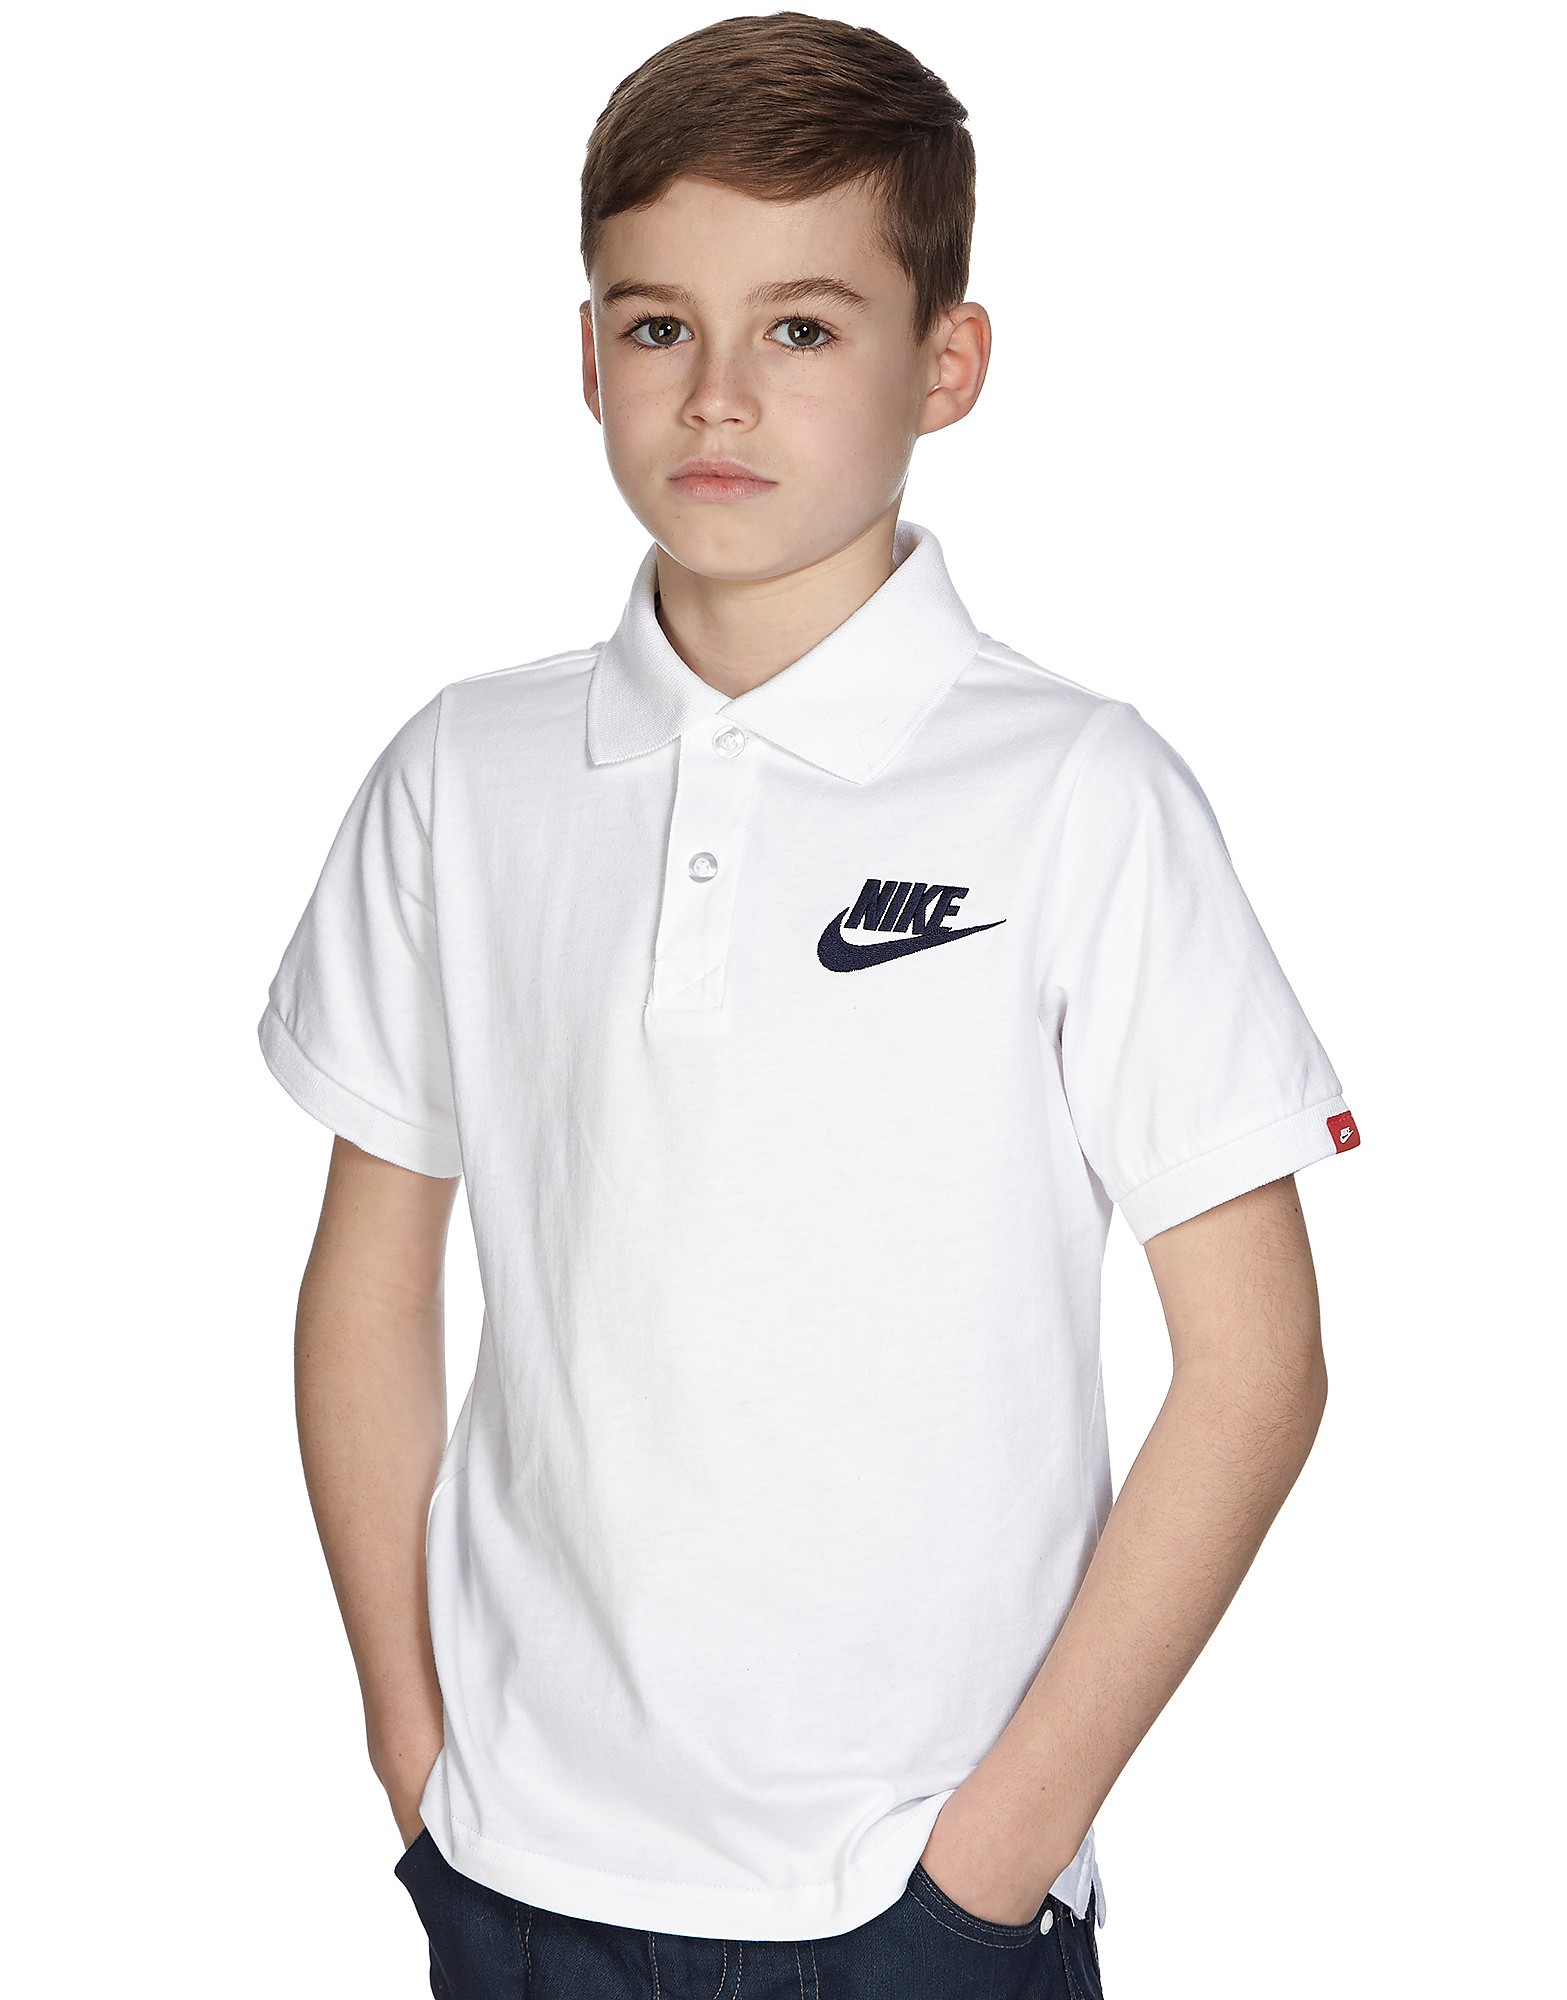 Nike Polo Shirt - Compare Prices at Foundem